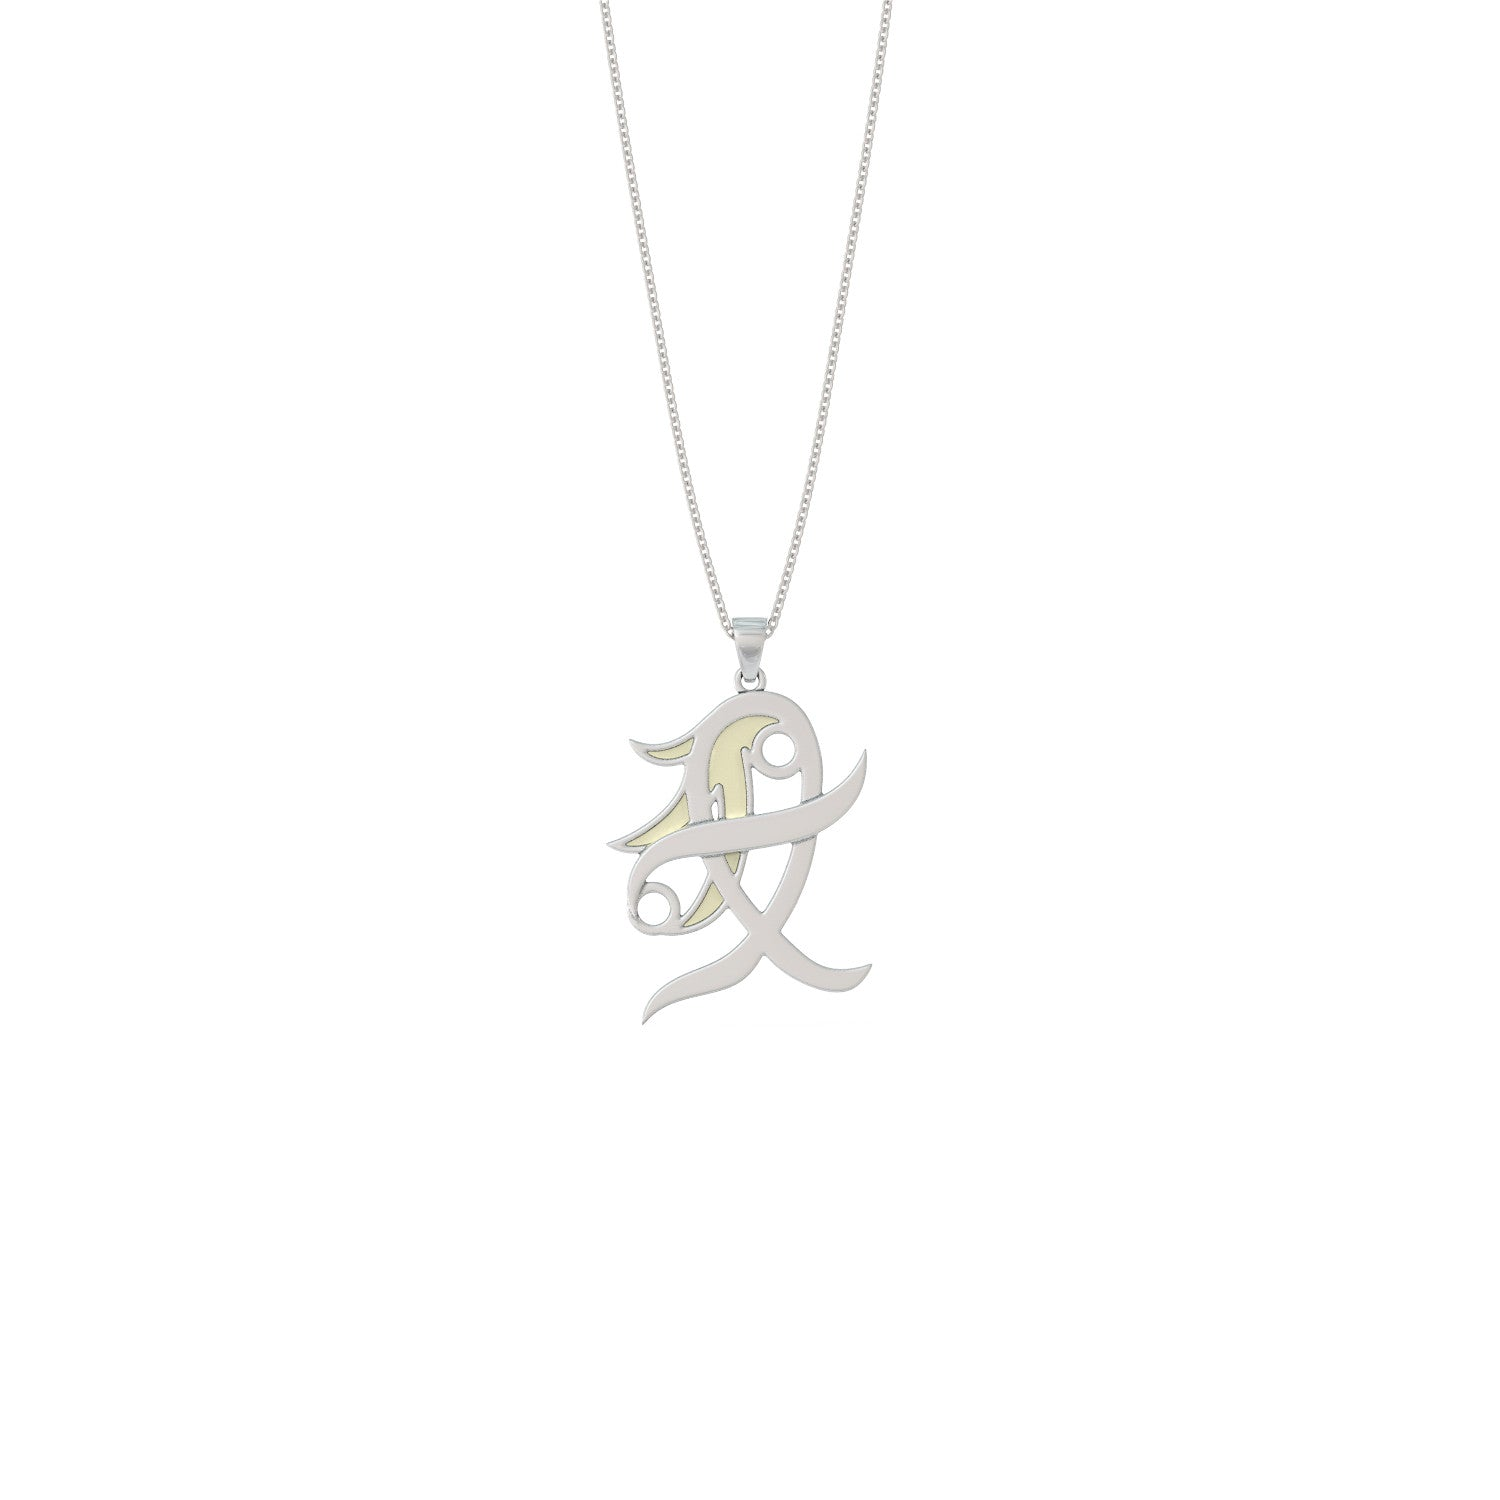 necklace virgo constellation aquarius capricorn zodiac products aries leo original sagit